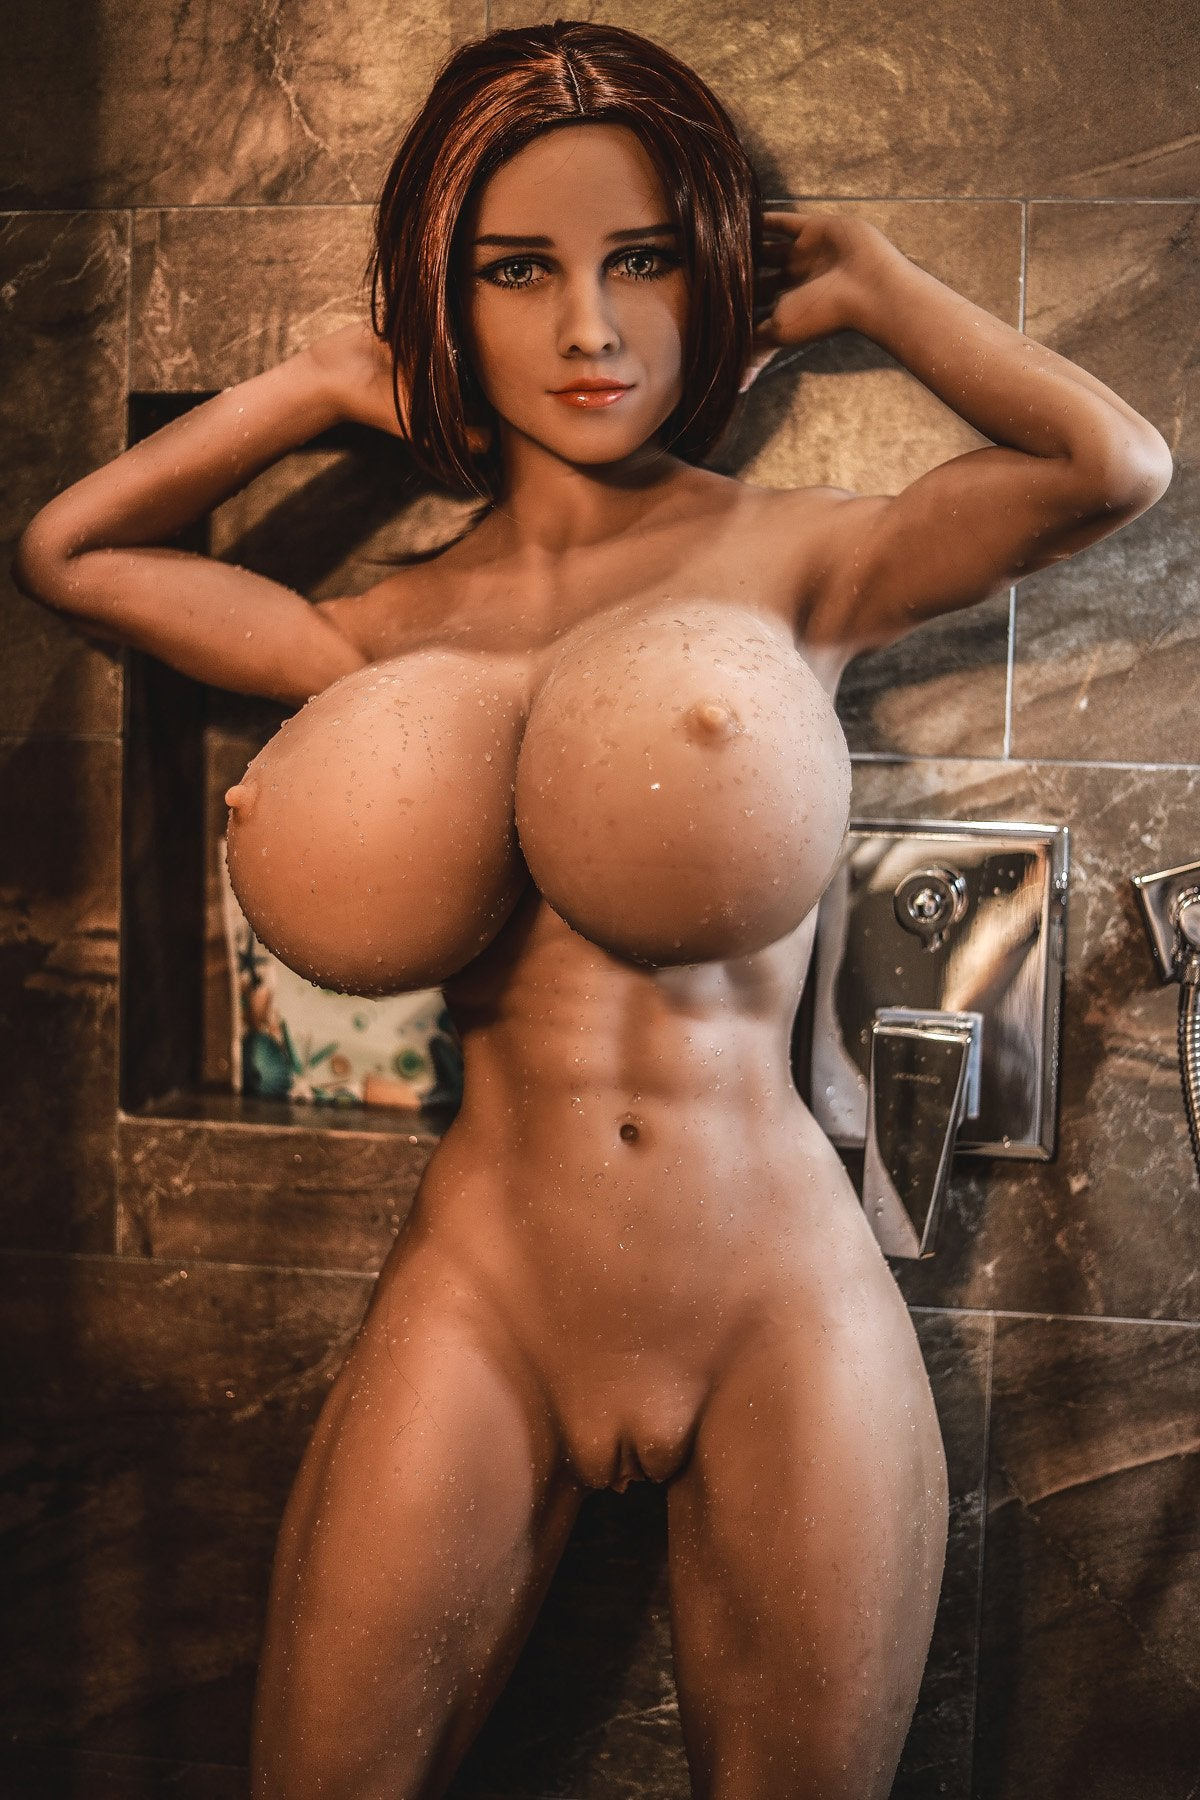 pearly 150cm brown hair curvy giant massive tits jy tan skin tpe sex doll(11)